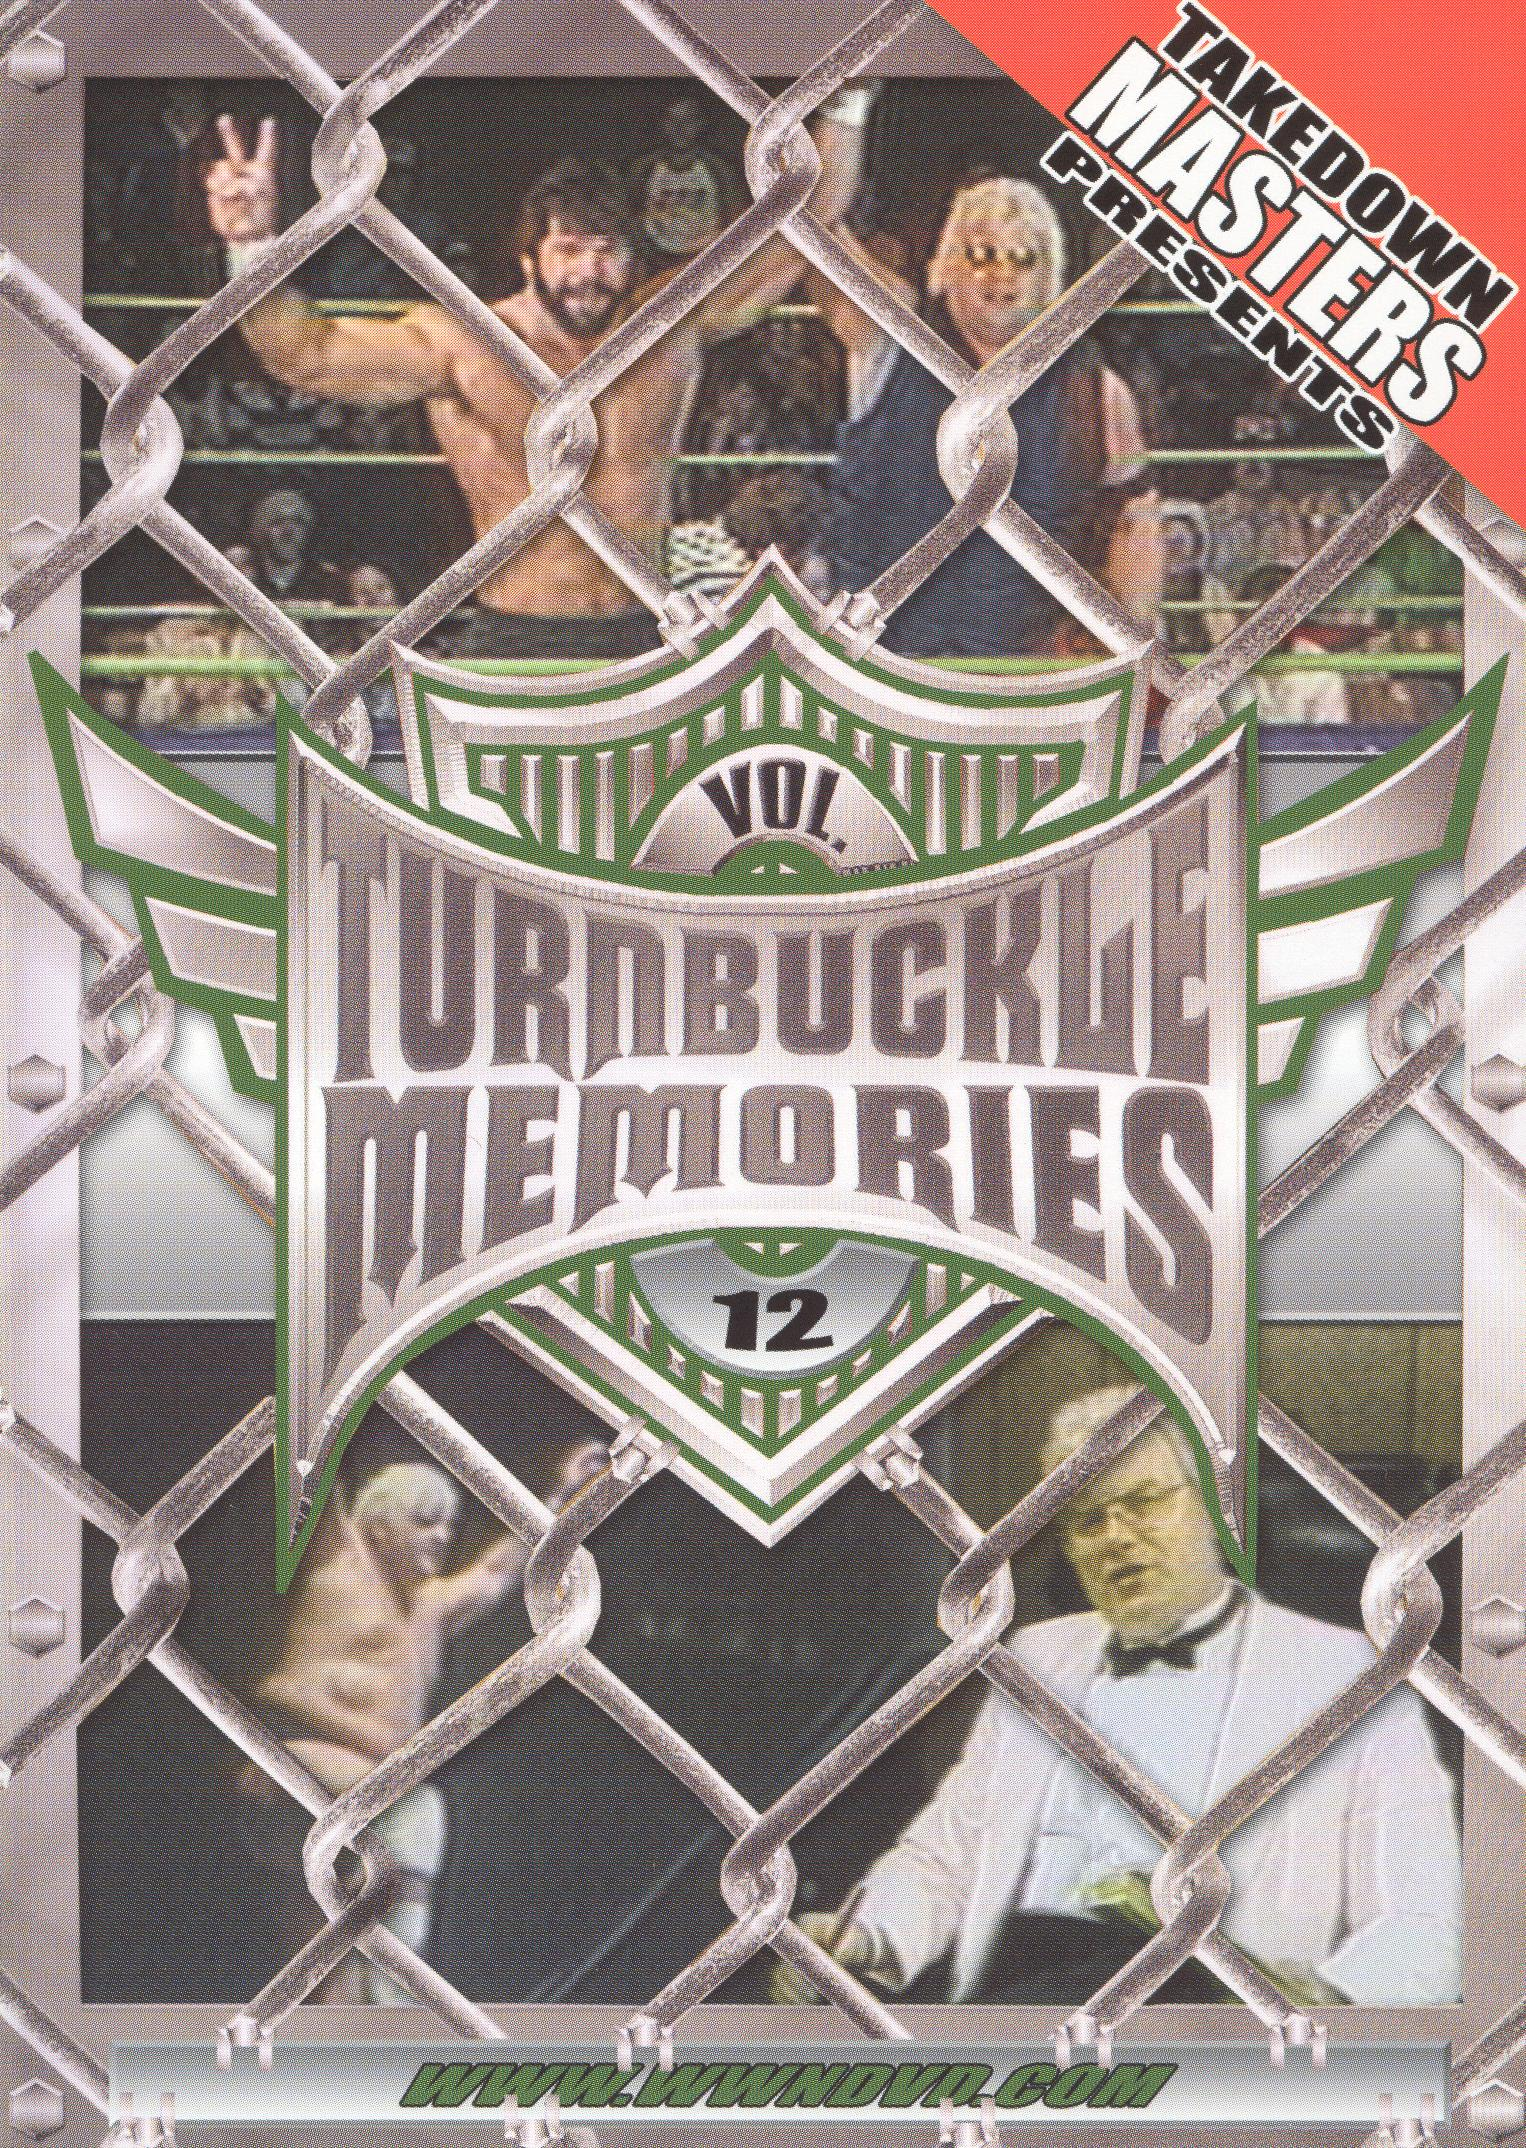 Takedown Masters: Turnbuckle Memories, Vol. 12